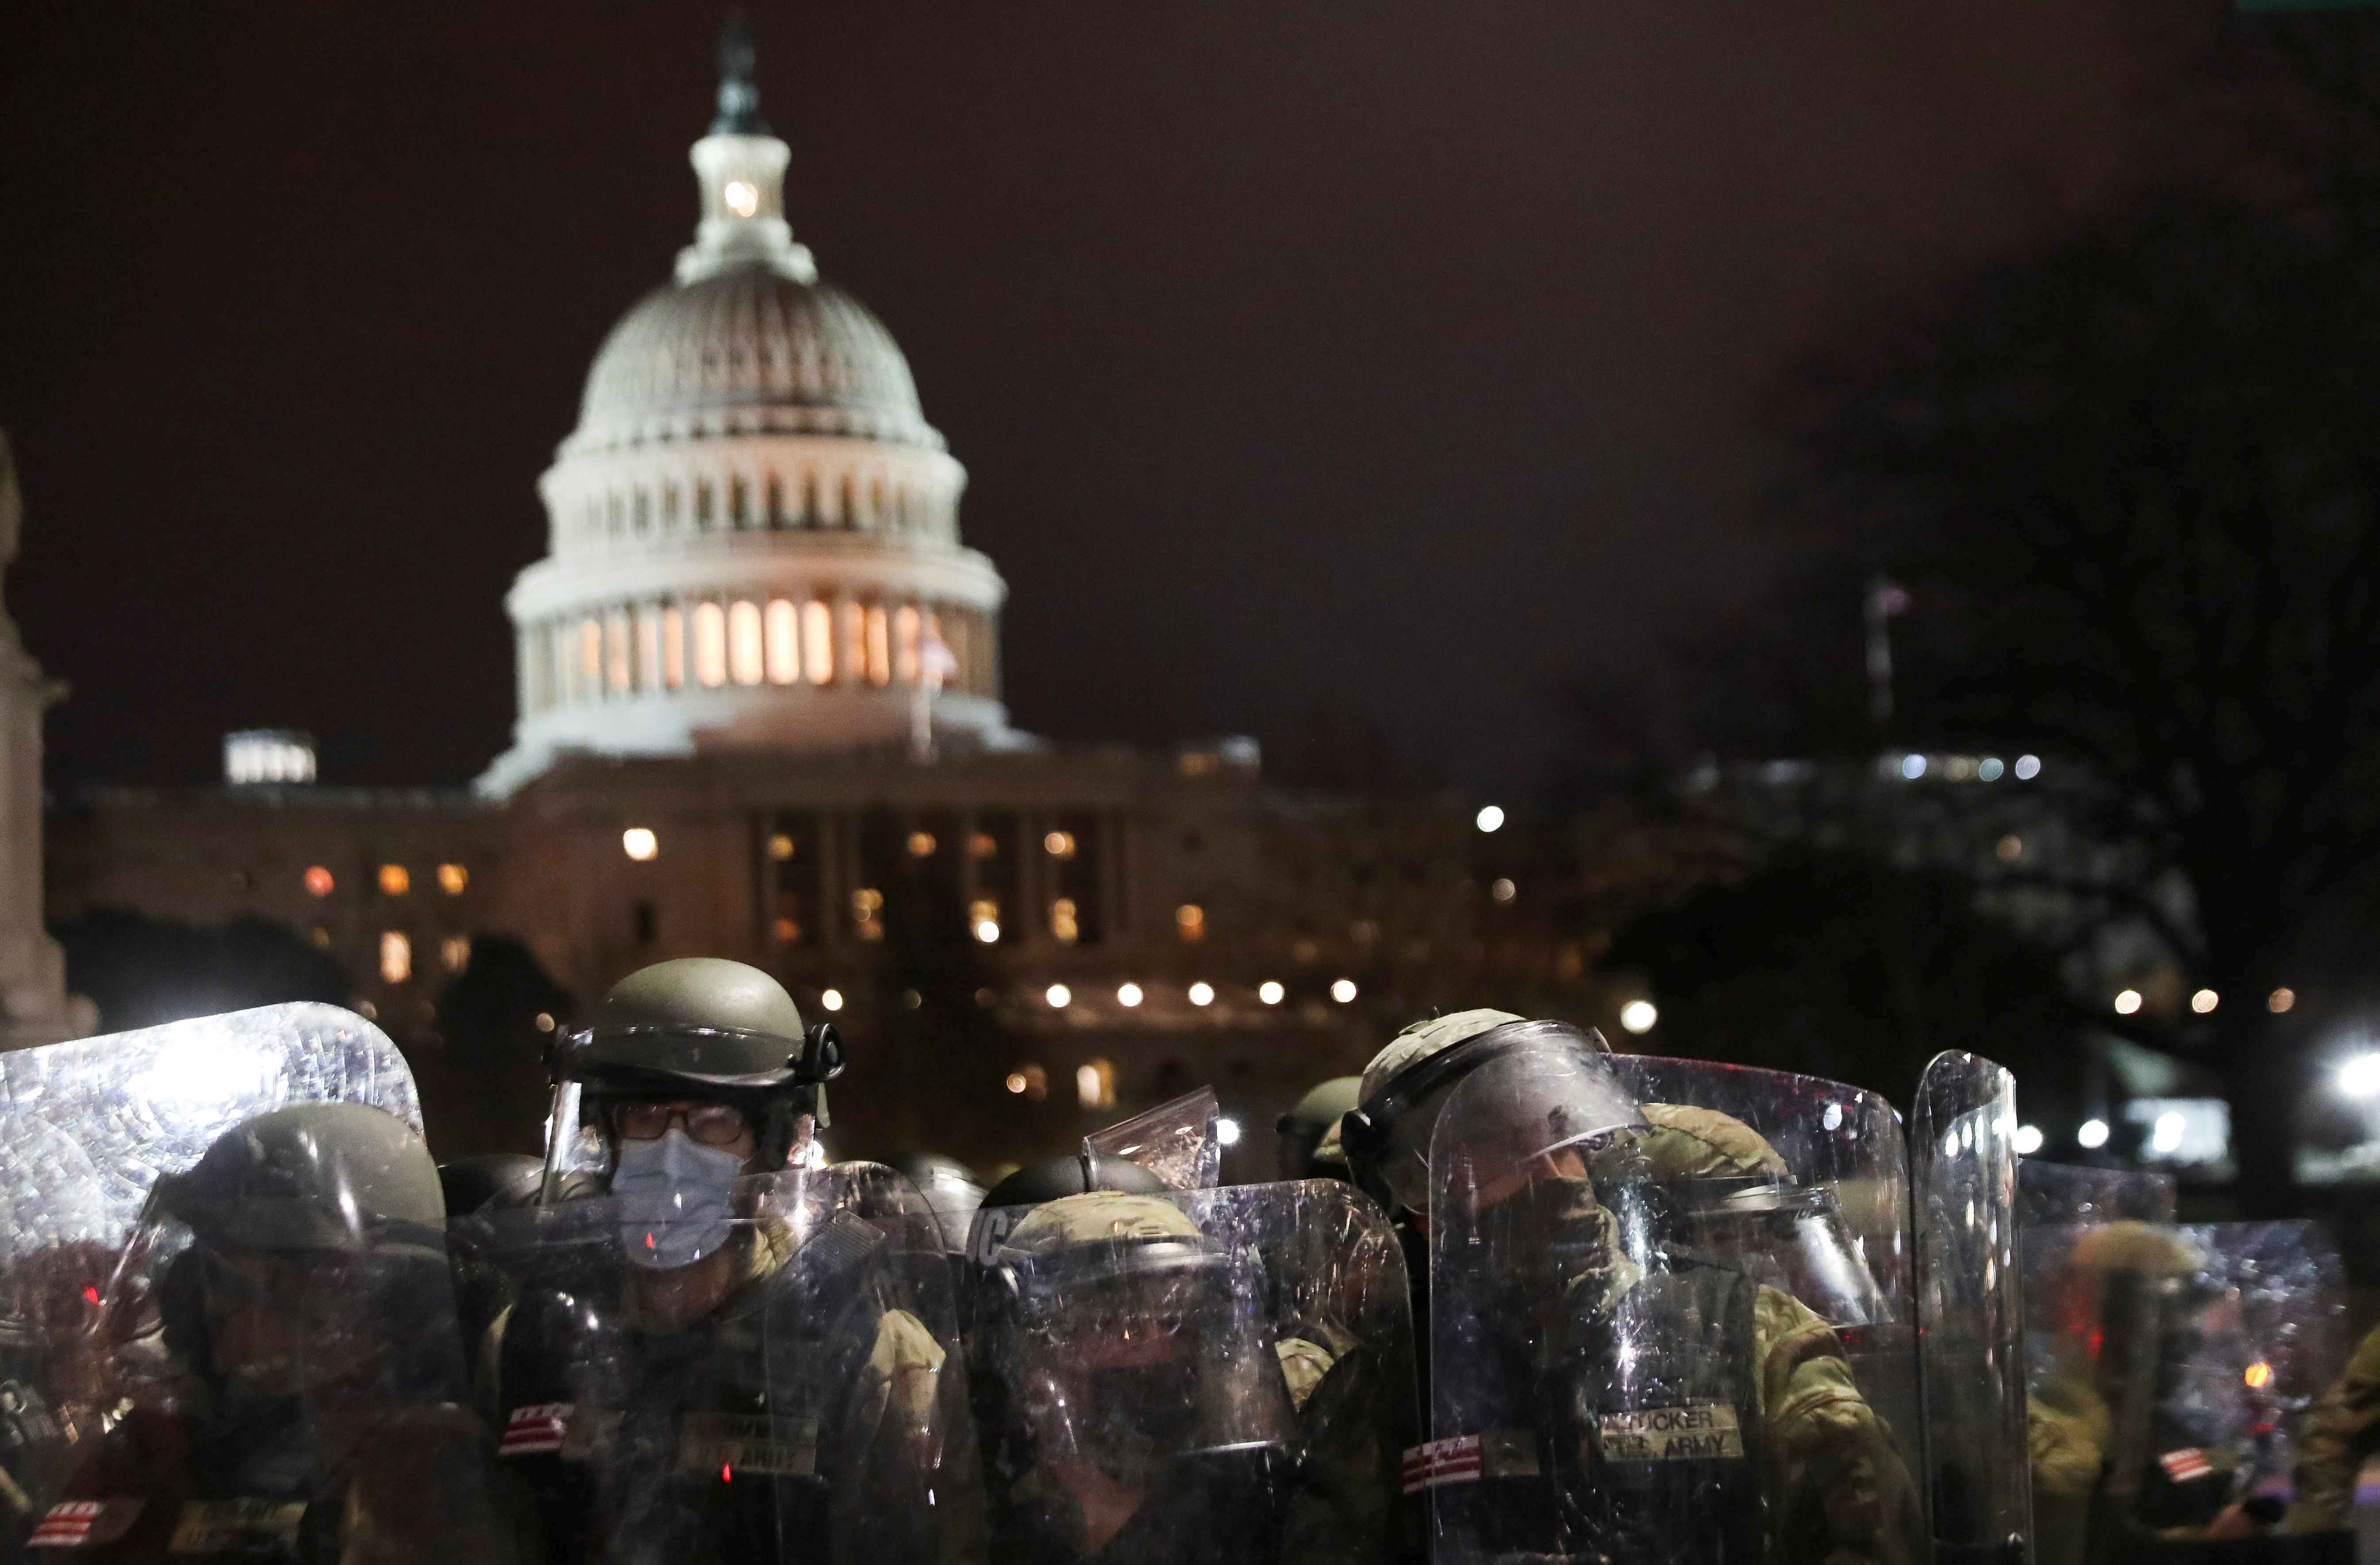 Members of the National Guard stand guard as supporters of U.S. President Donald Trump gather outside the U.S. Capitol building during a protest against the certification of the 2020 U.S. presidential election results by the U.S. Congress, in Washington, U.S., January 6, 2021.REUTERS/Leah Millis